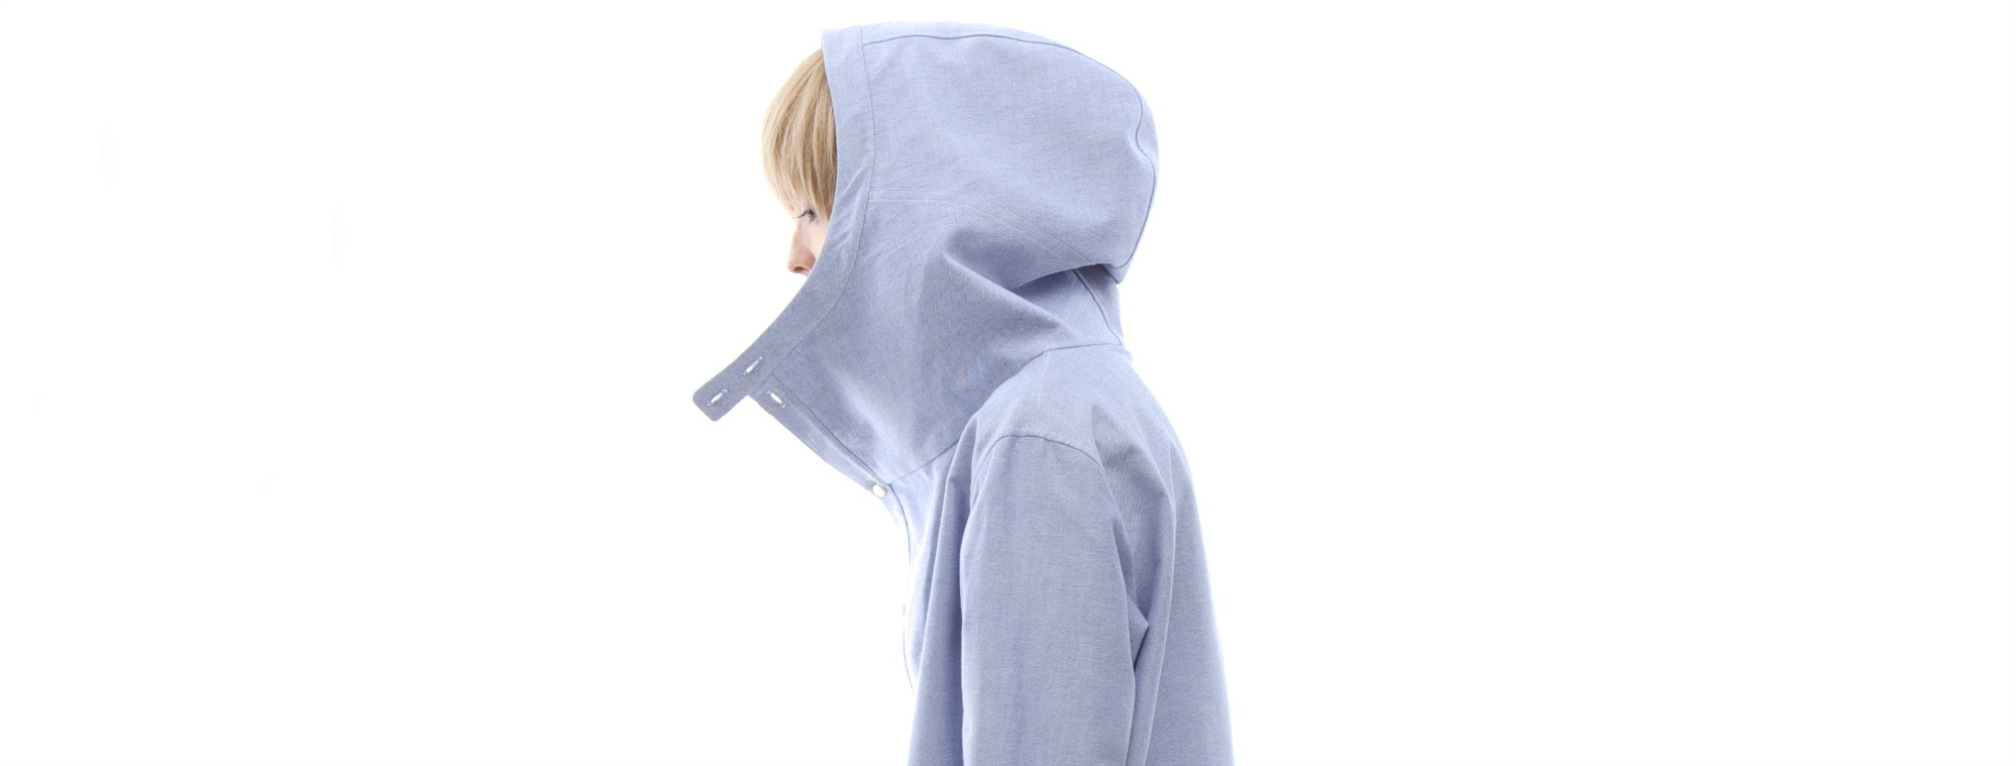 hatra 2013 spring & summer collection image-3